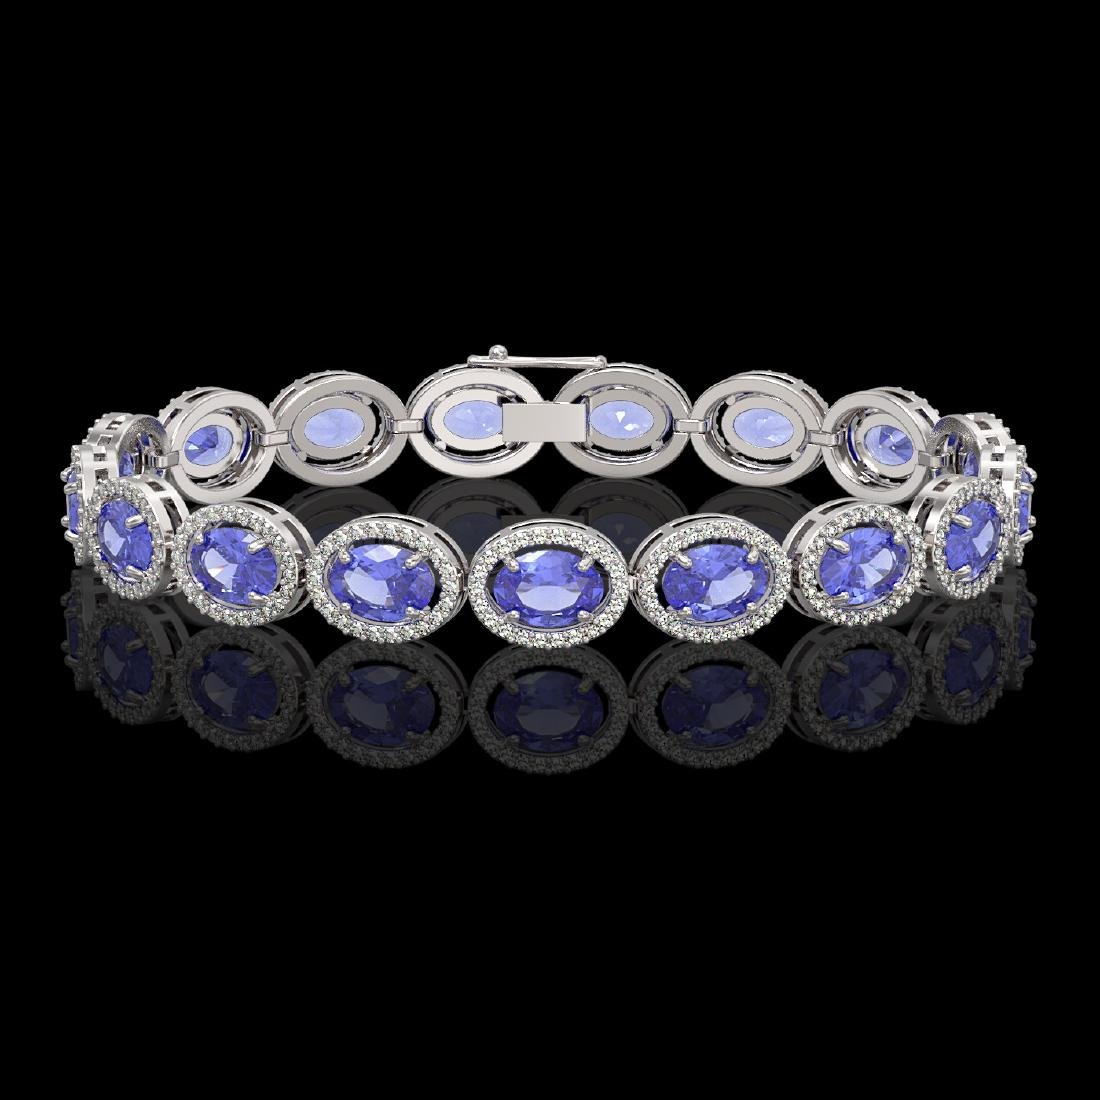 21.35 CTW Tanzanite & Diamond Halo Bracelet 10K White